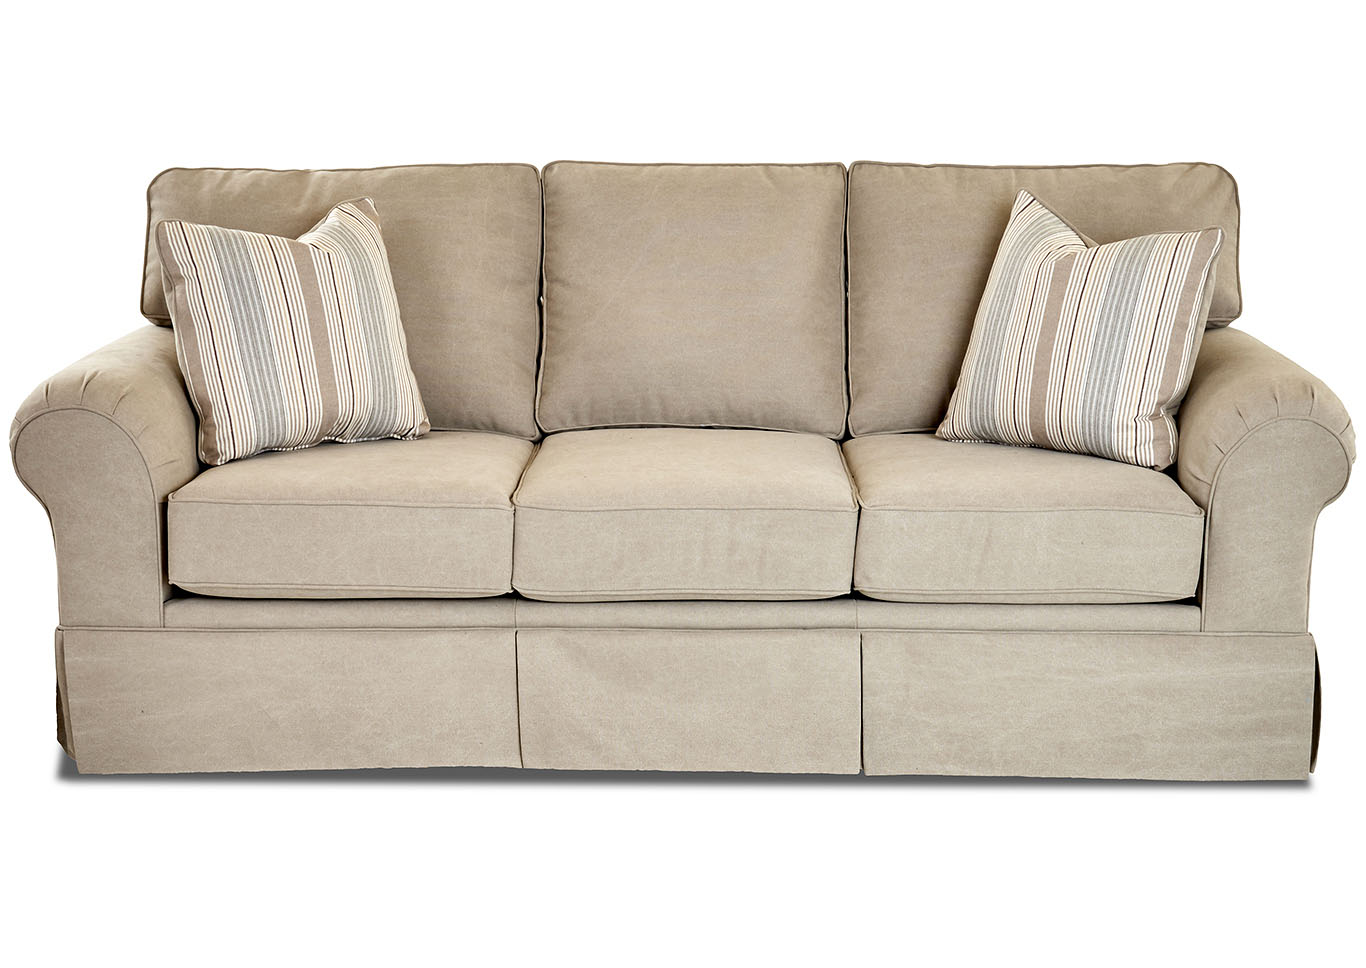 Sofa Take Home Today Weiss Furniture Woodwin Tibby Linen Fabric Sofa